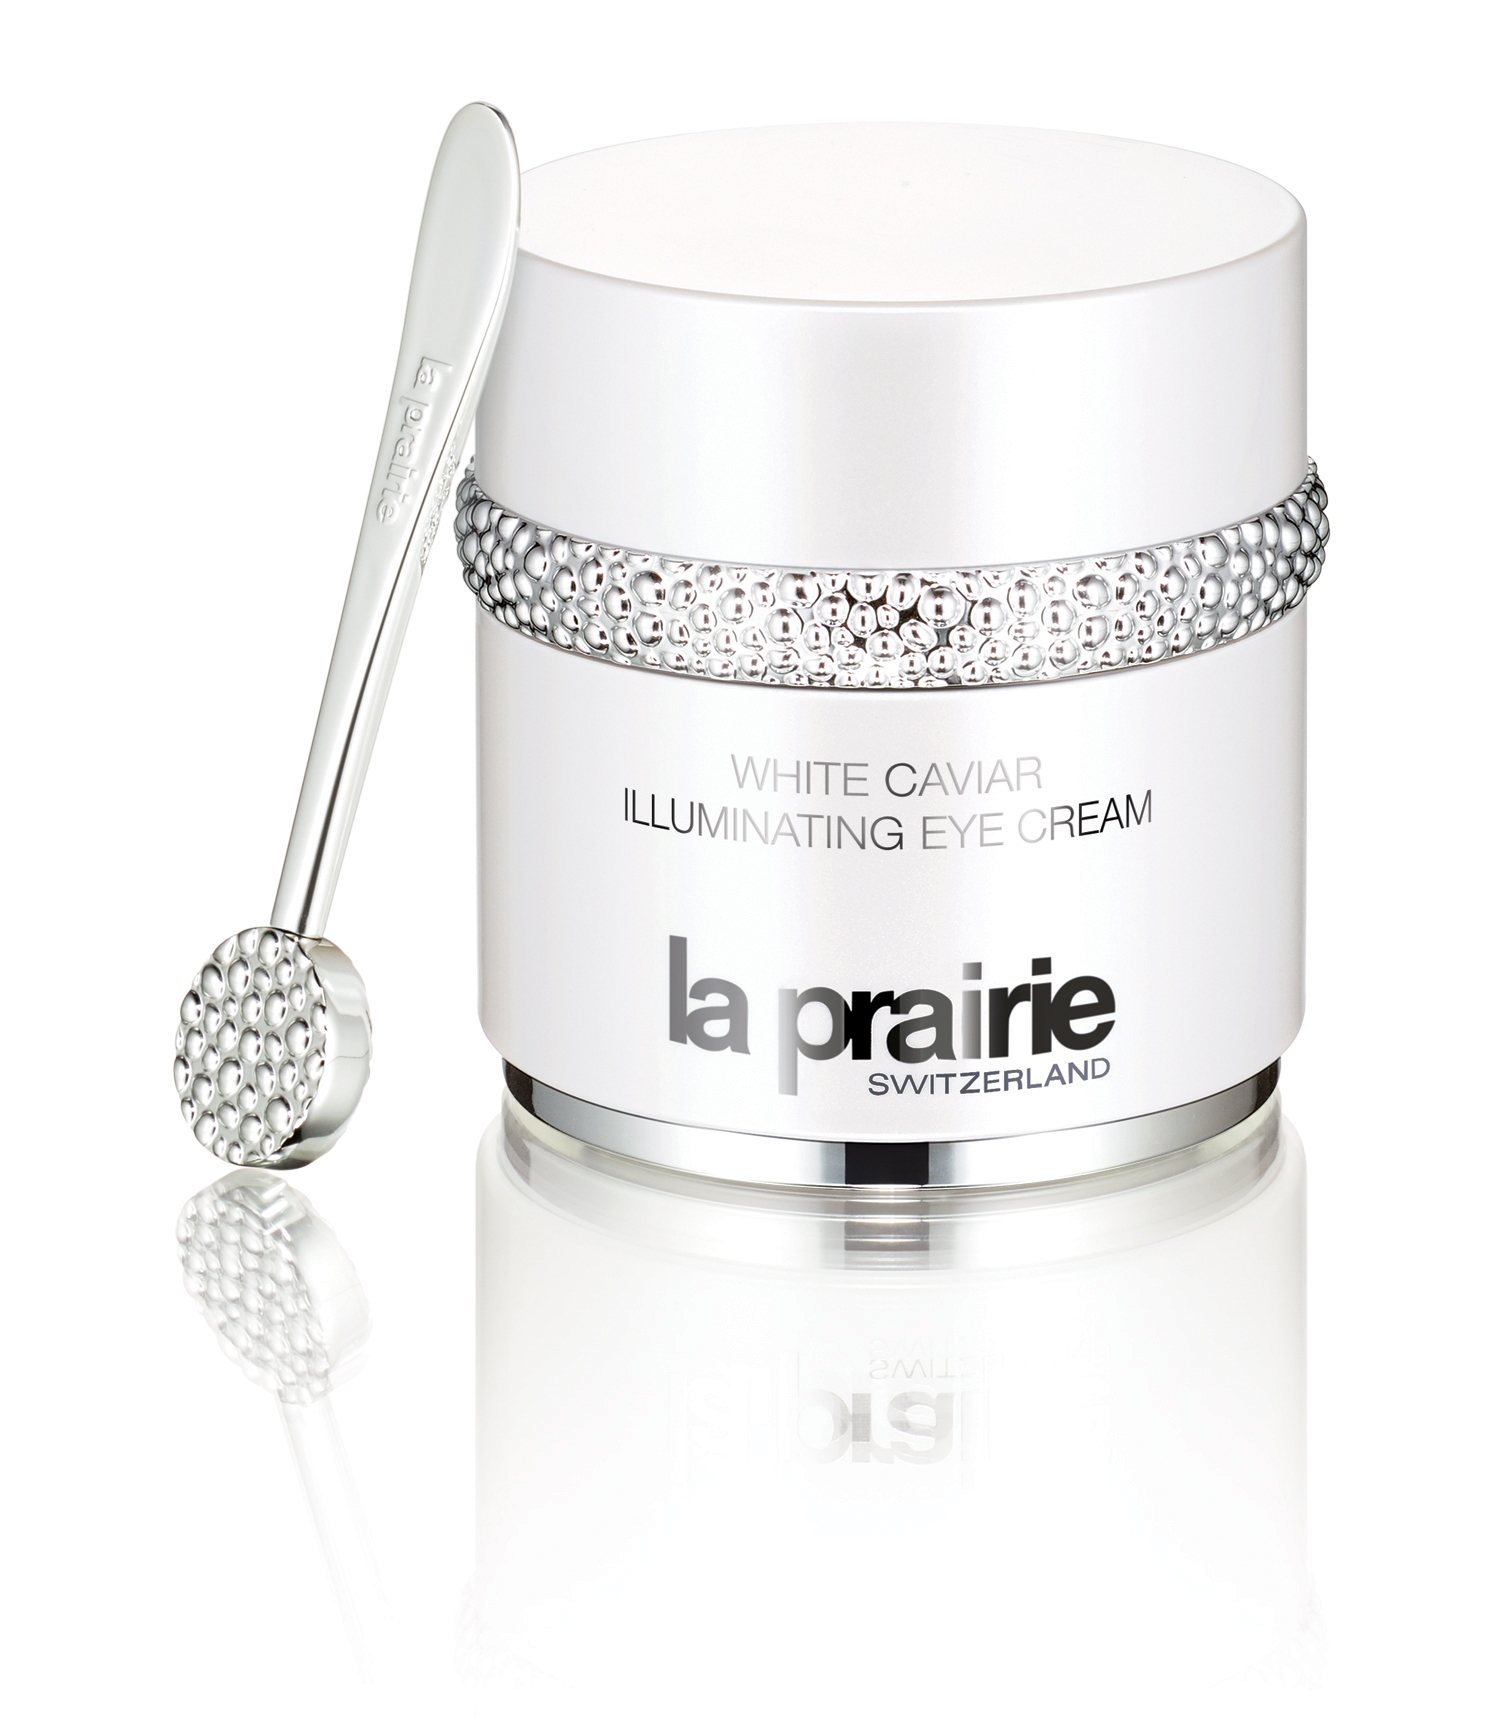 La Prairie White Caviar Eye Cream 20ml